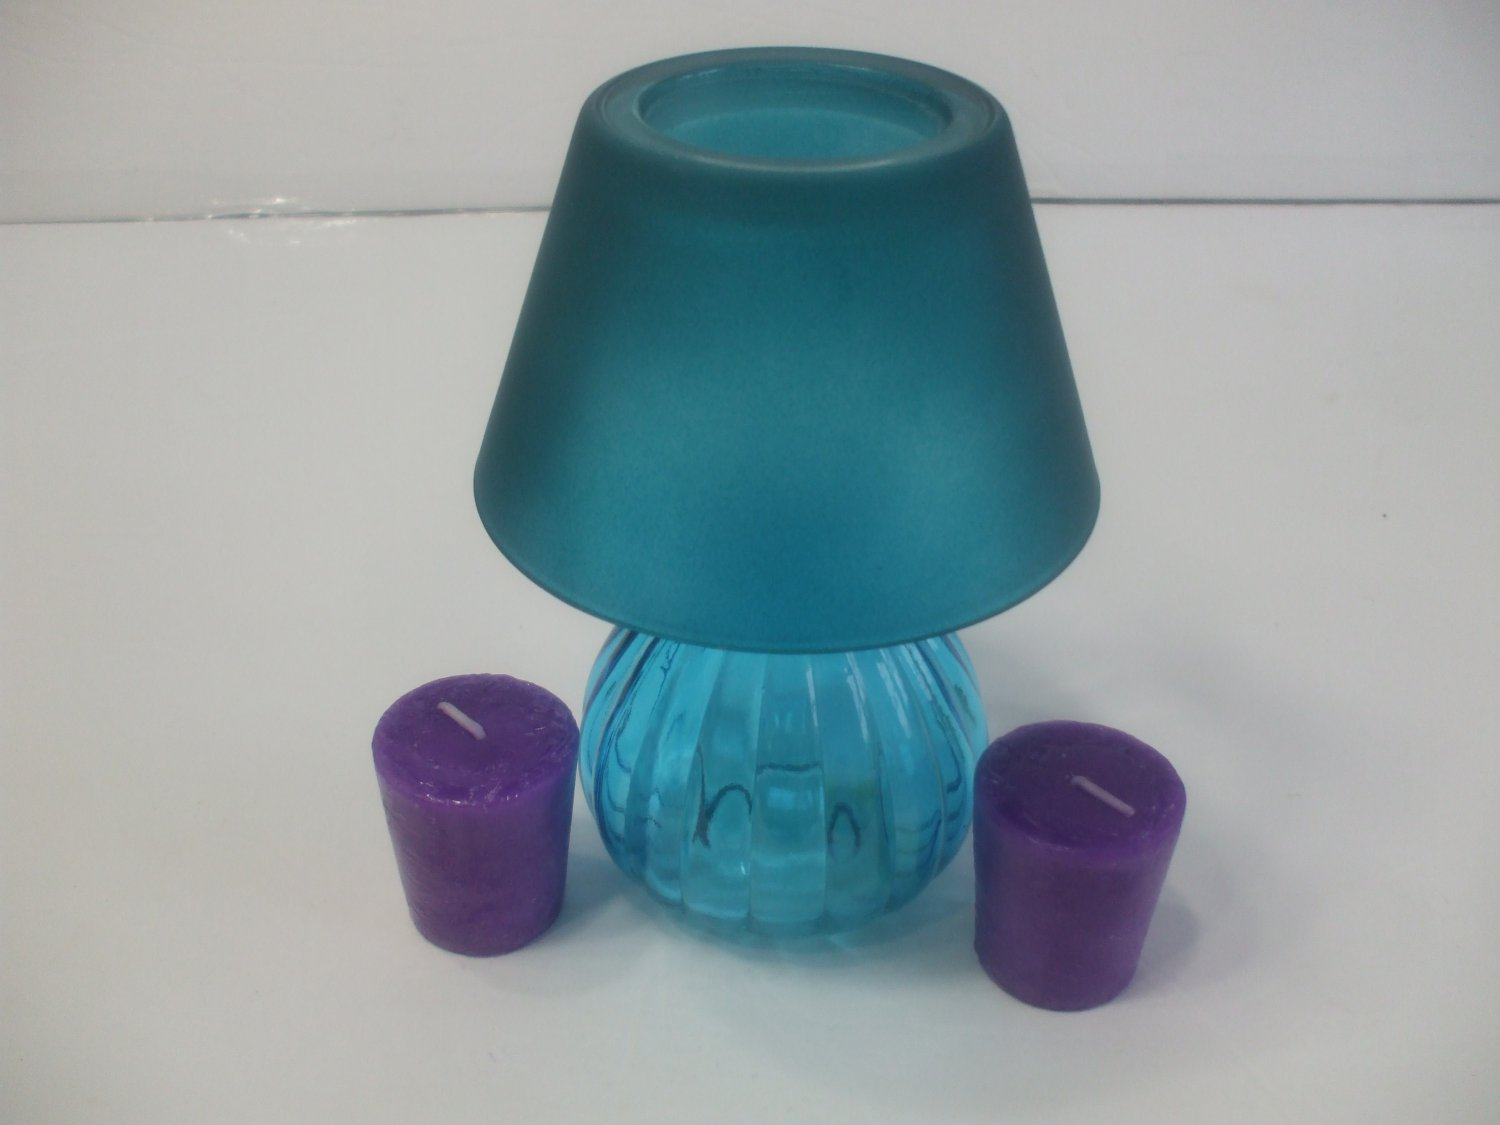 Mini Blue Glass Candle Holder Lamp With 2 Mini Lavender Scented Votive Candles